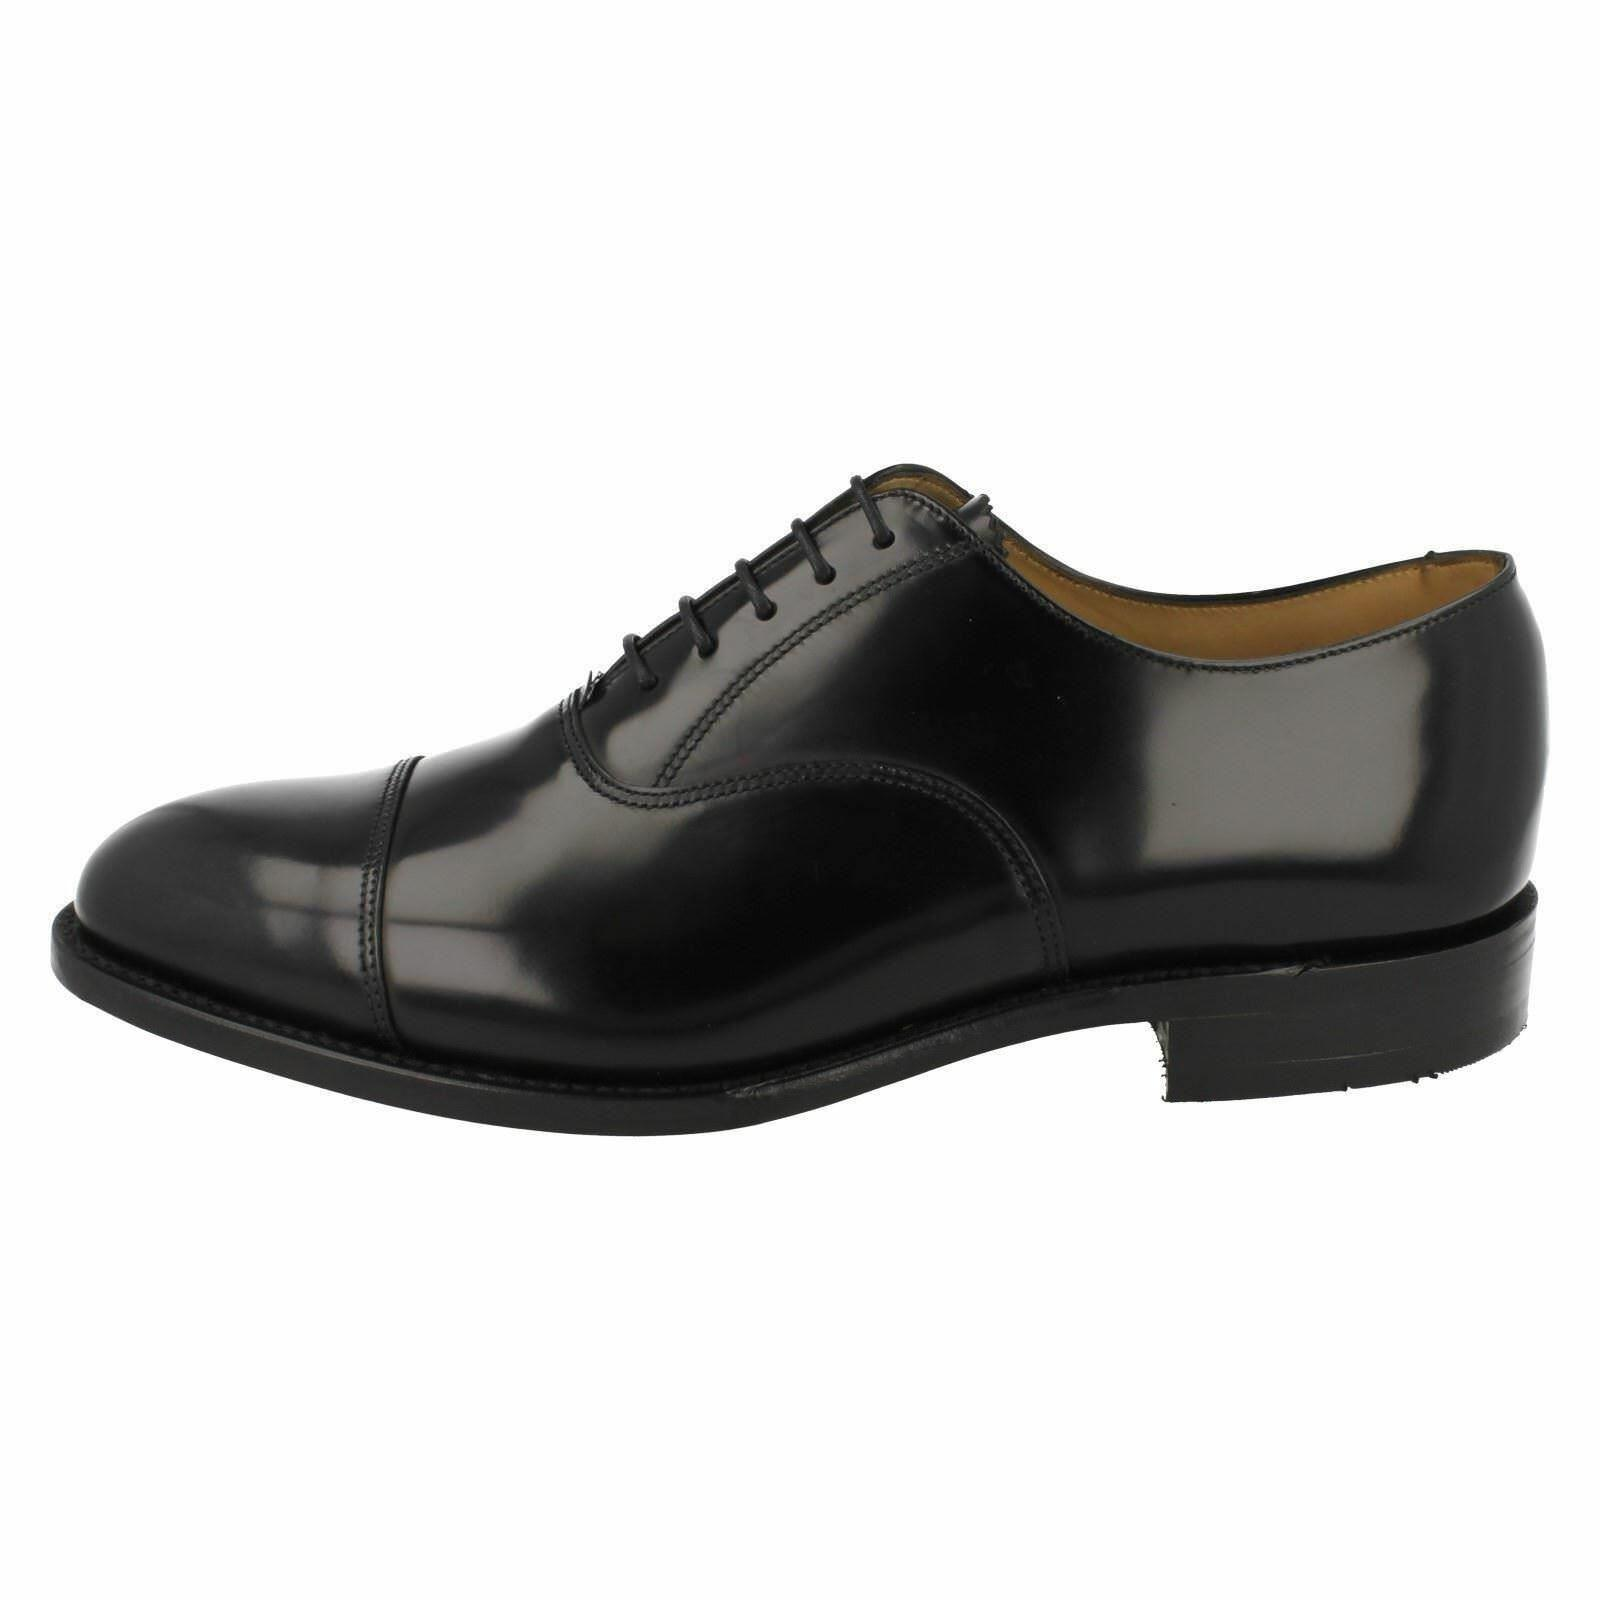 Mens 747B F fitting black leather toe cap lace up shoe by Loake £155.00